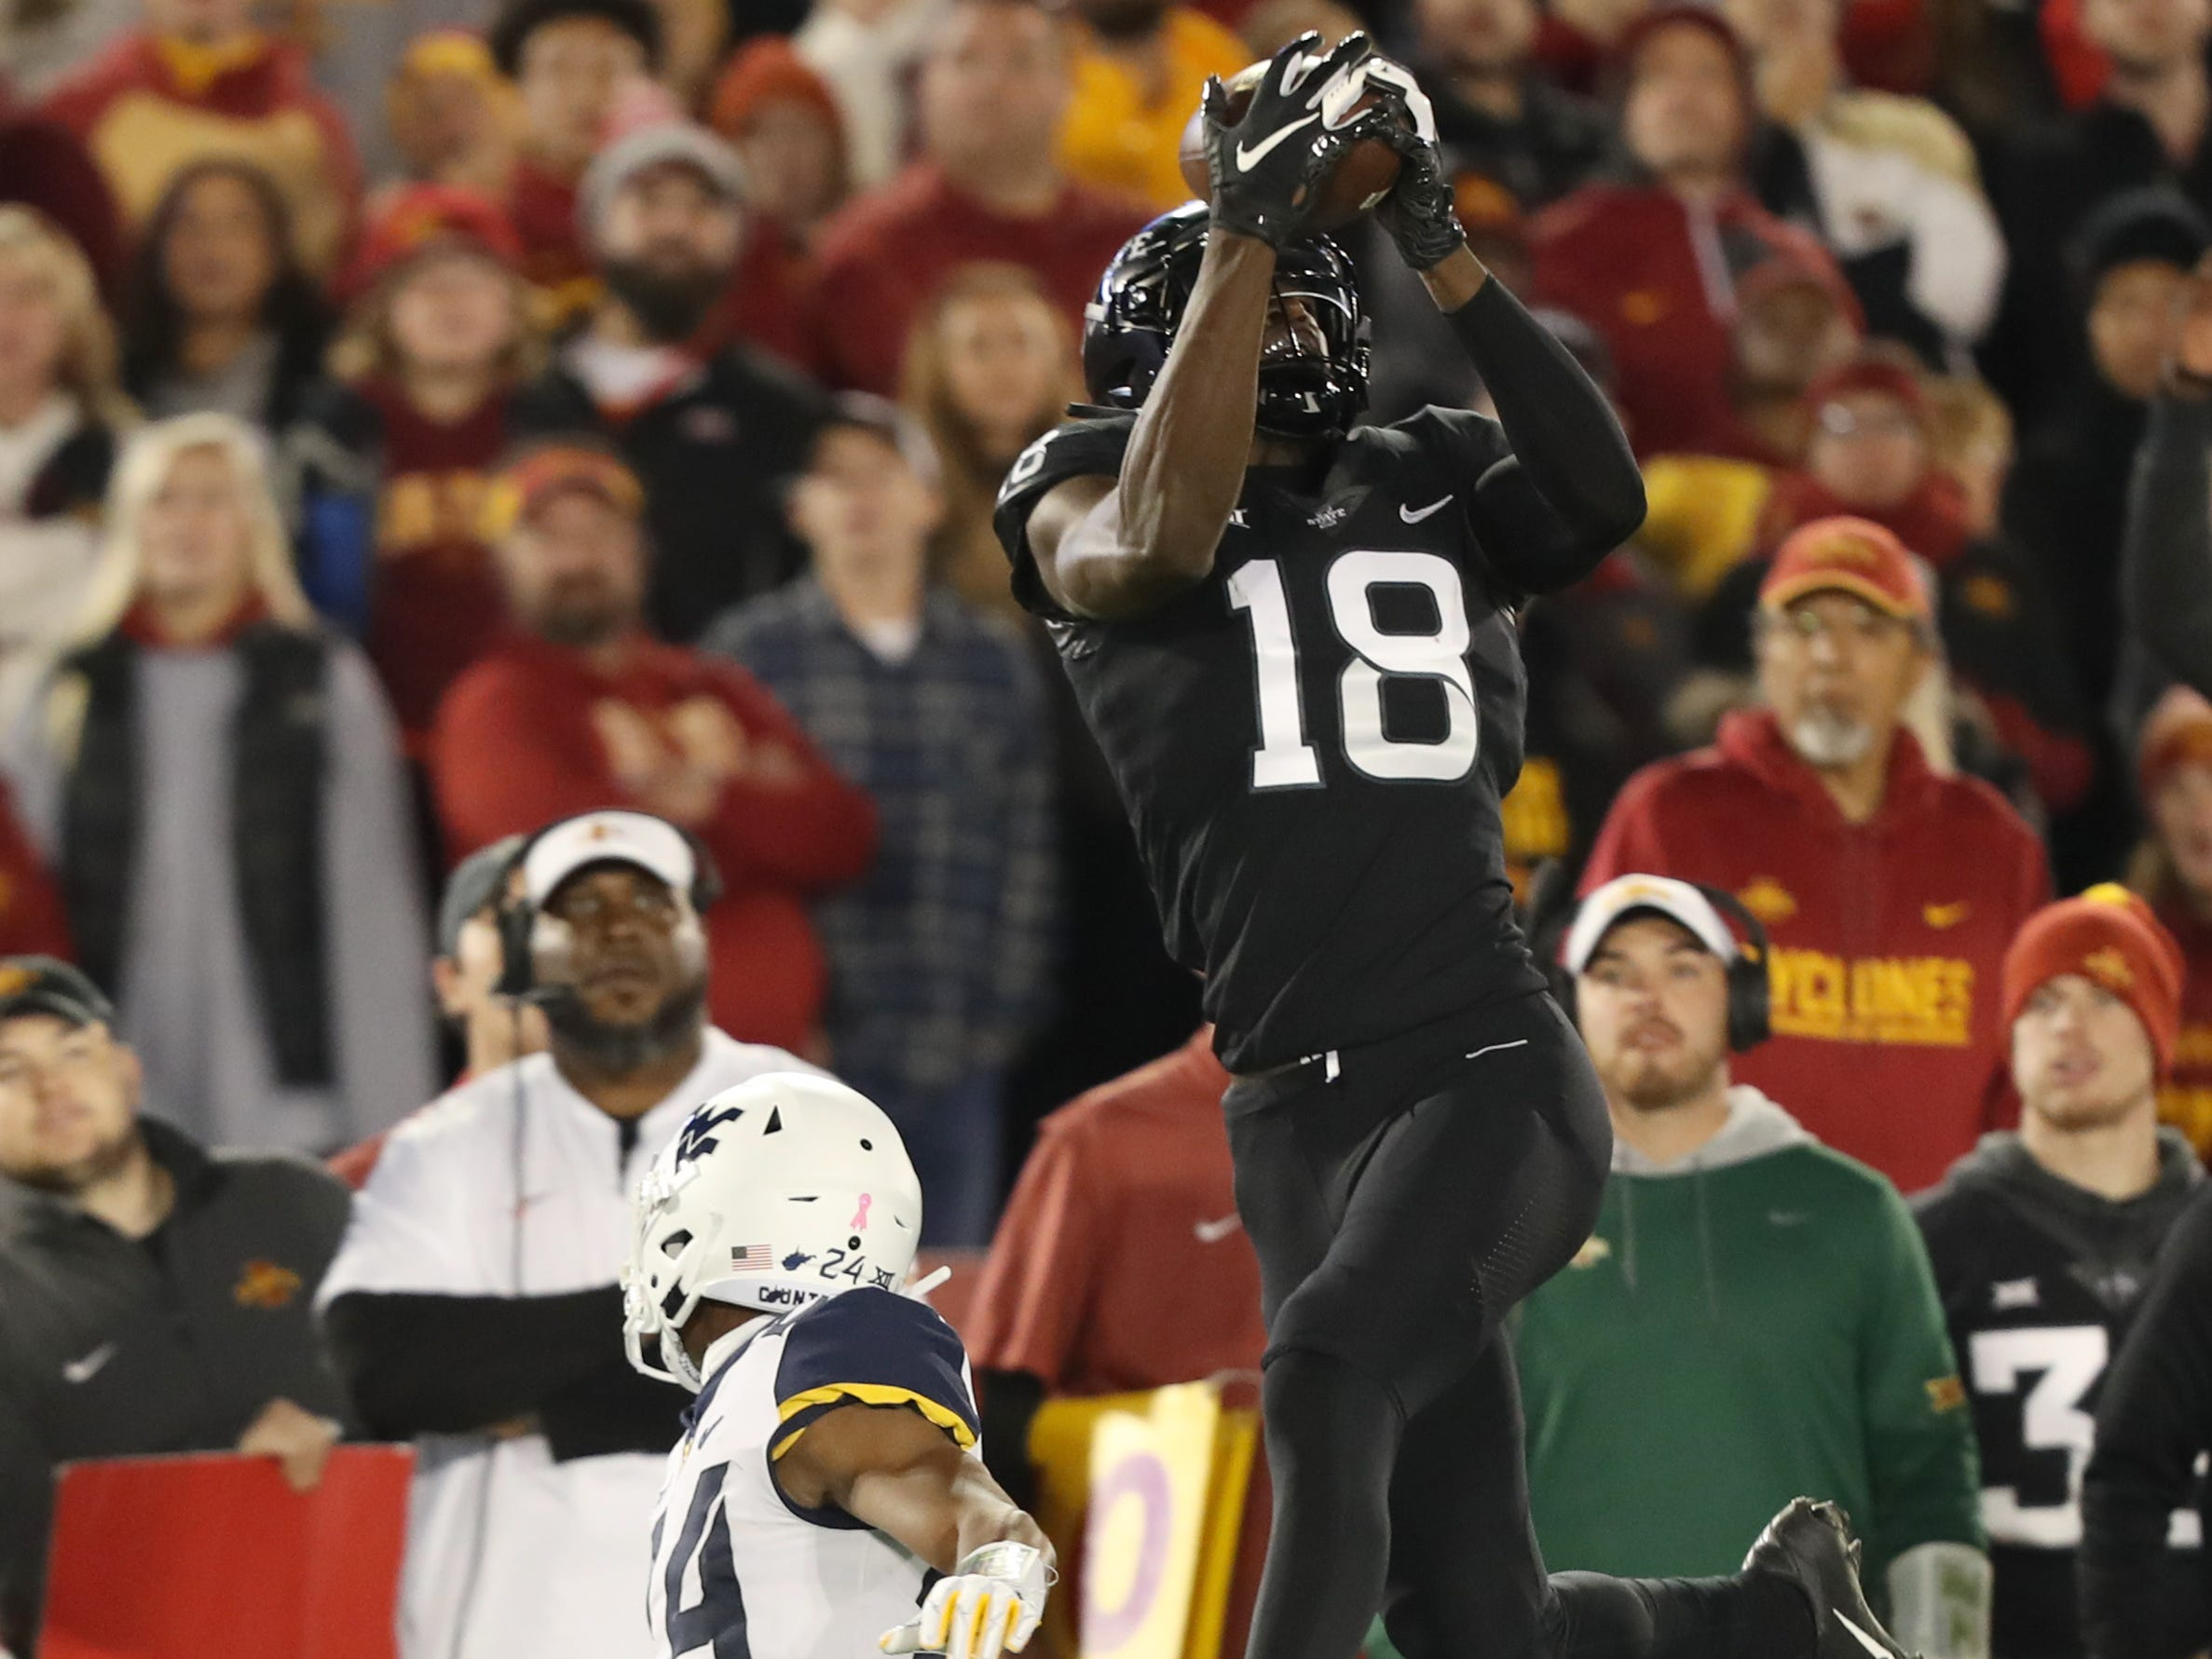 Iowa State Cyclones wide receiver Hakeem Butler (18) jumps over West Virginia Mountaineers safety Josh Norwood (4) for a catch at Jack Trice Stadium.